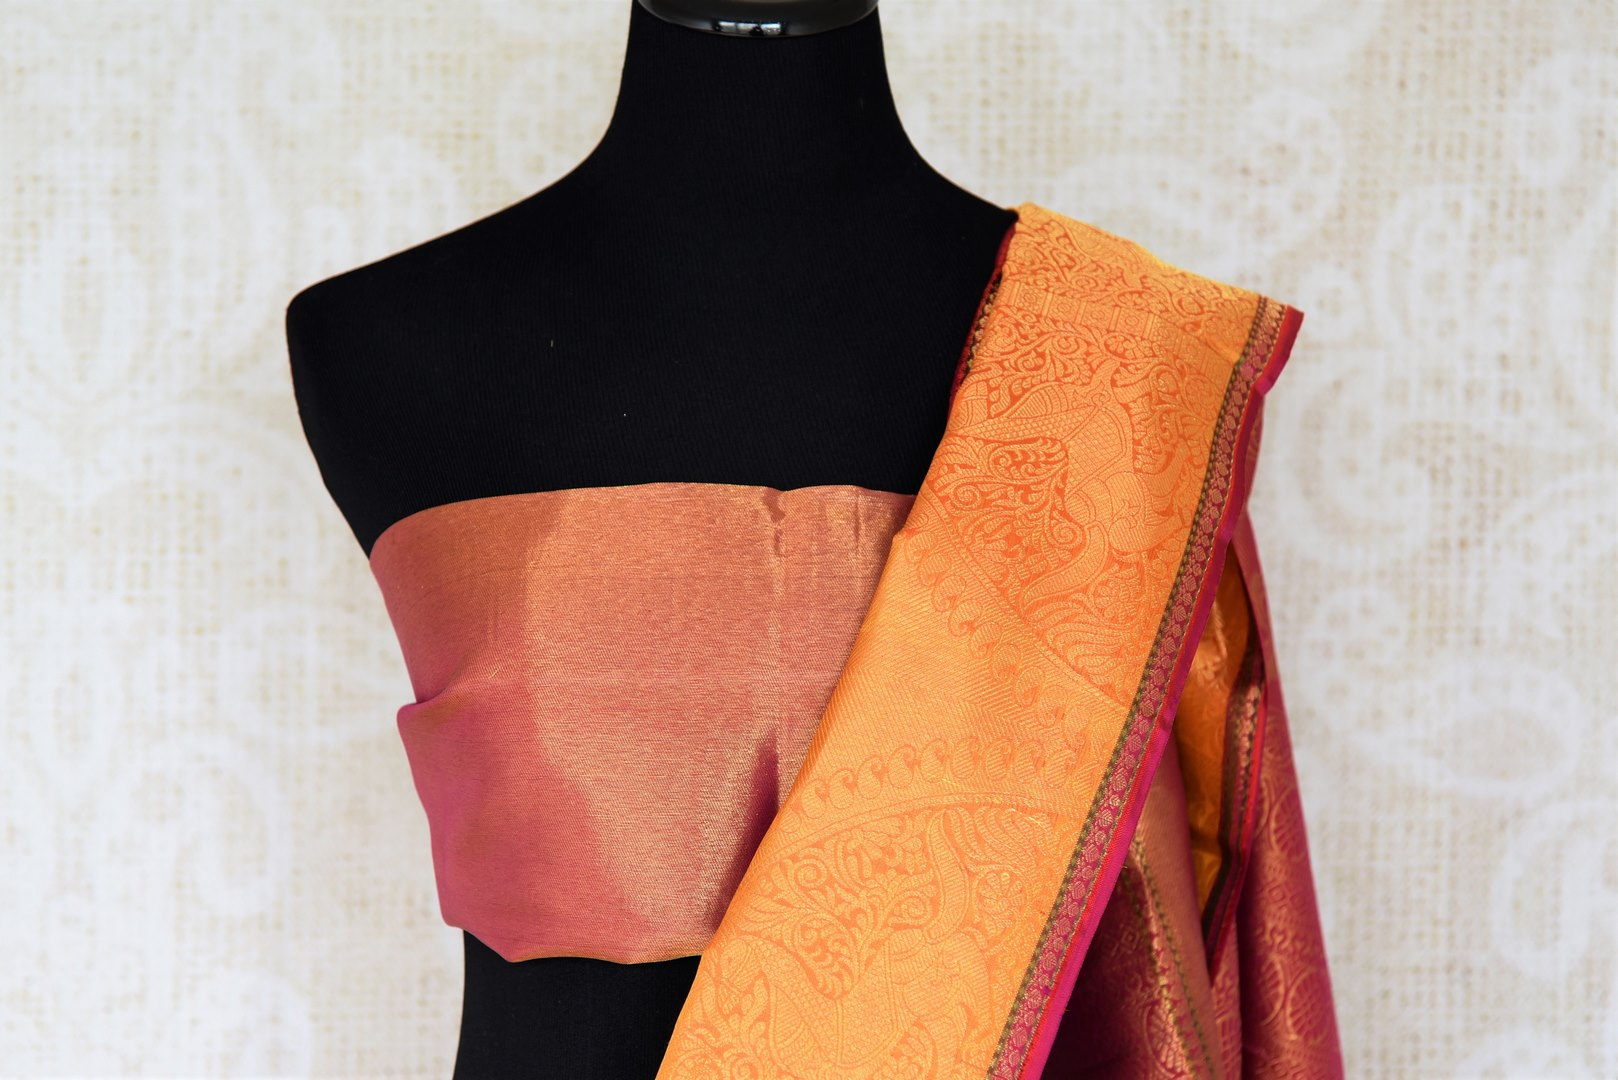 Don this gorgeous handwoven pure kanjeevaram silk sari with zari weave on the border complemented by a stunning contrasted blouse to weddings and festivities. Celebrate the season of weddings and shop handloom sarees, designer silk saris, ikkat sarees, banarsi silk sarees online or visit Pure Elegance store in USA. -blouse pallu